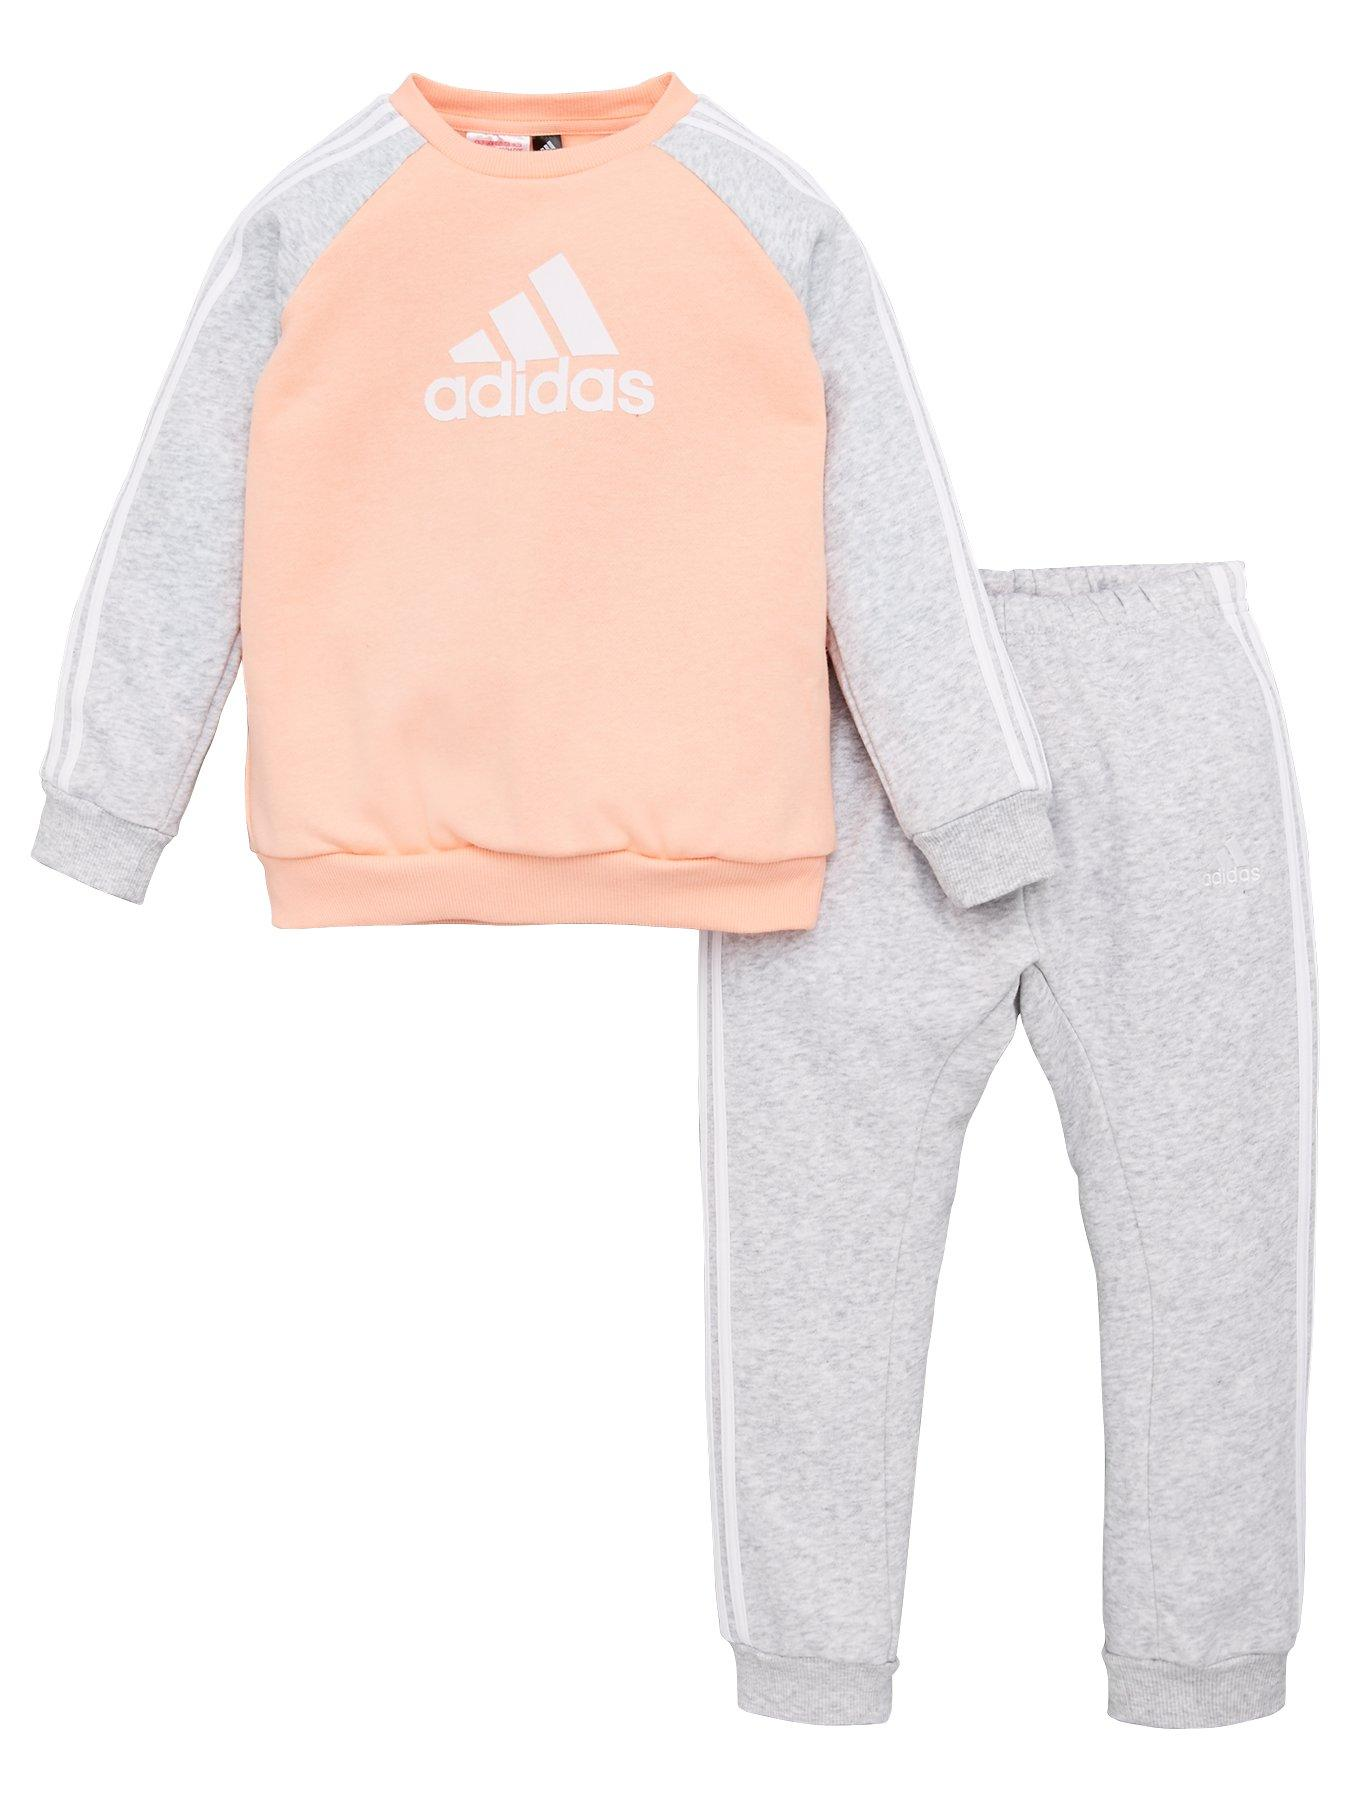 3 Piece Athleisure Outfit Set Surprise Top and Jogger